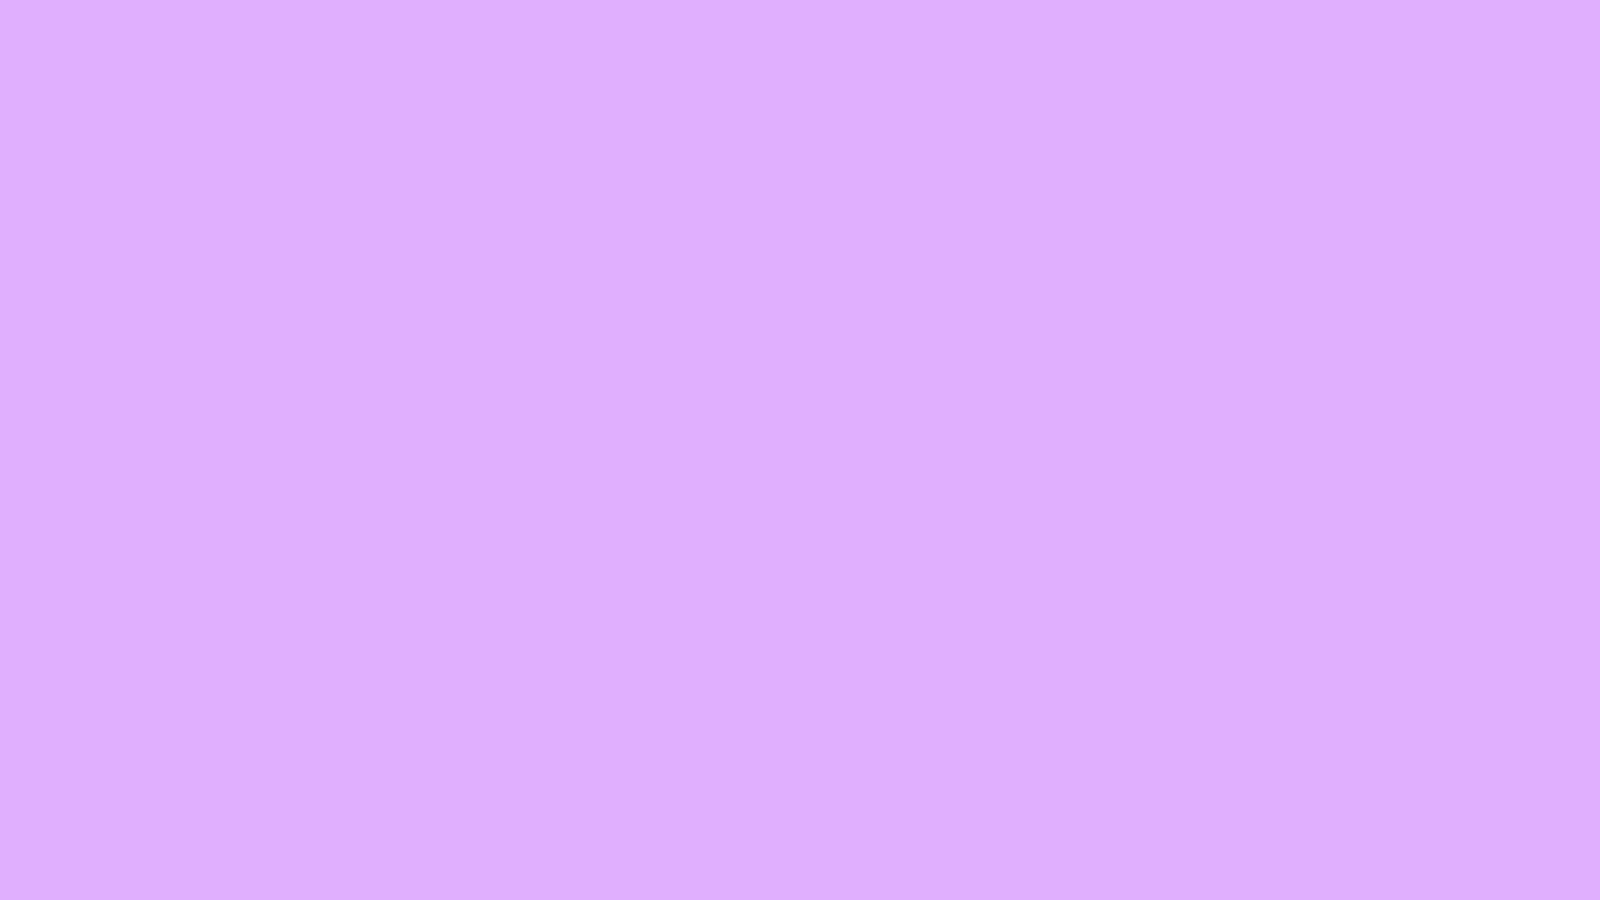 1600x900 Mauve Solid Color Background